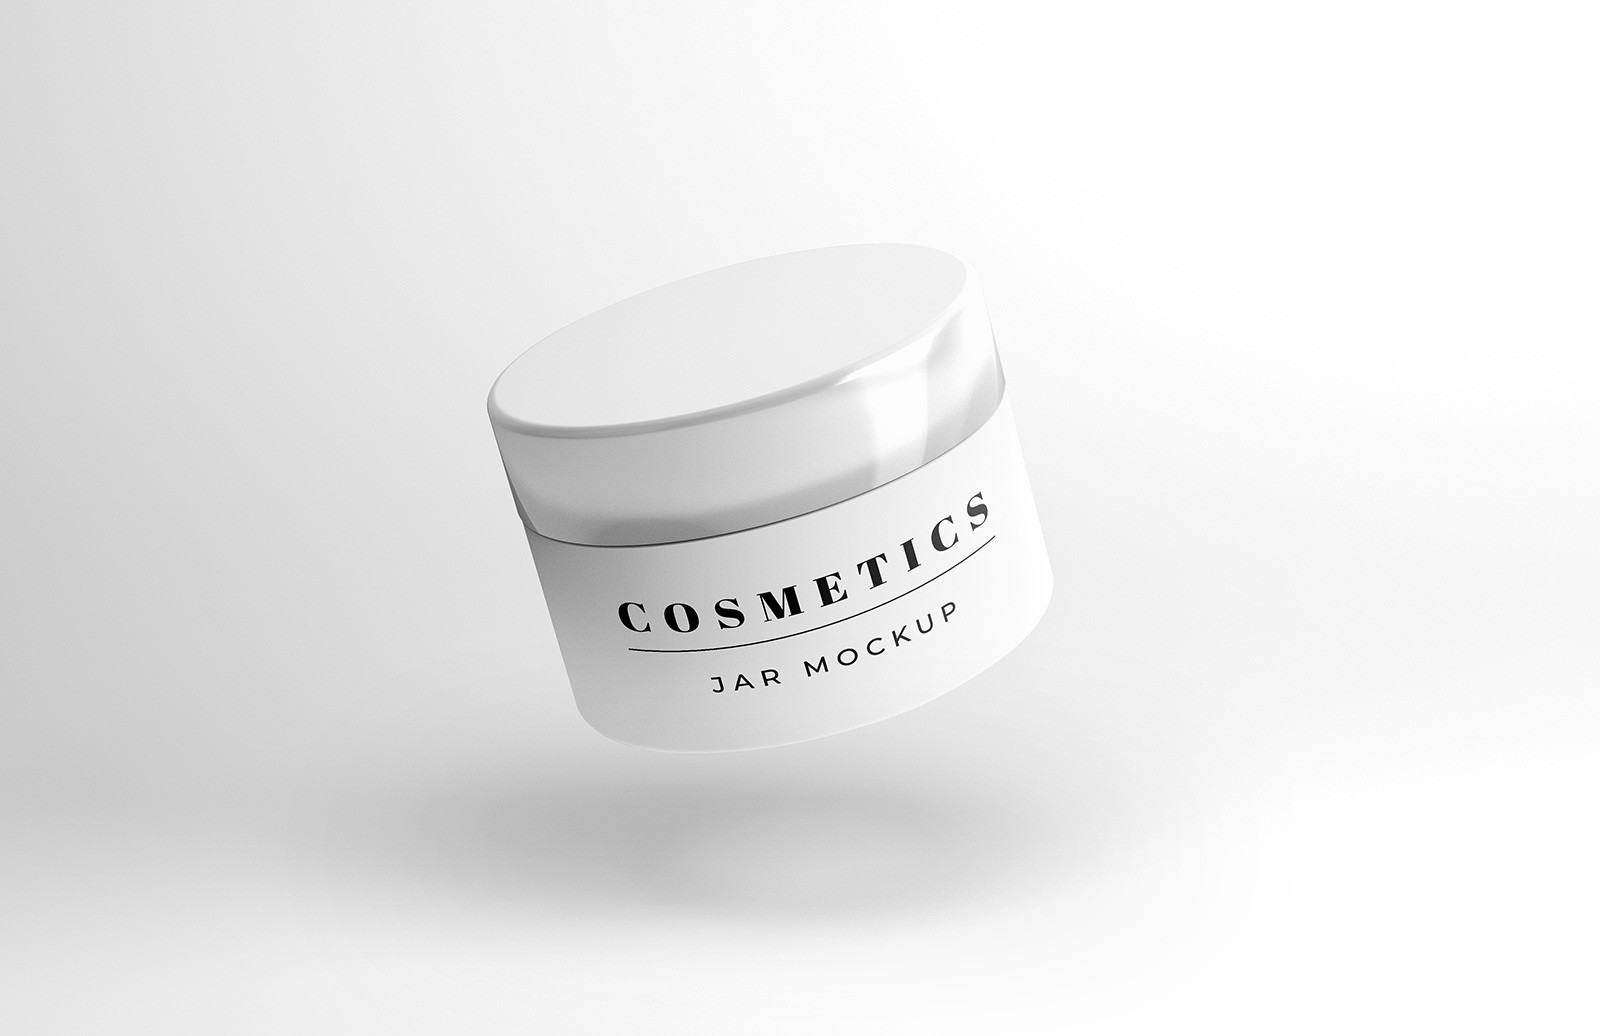 Floating Cosmetics Jar Mockup Preview 1